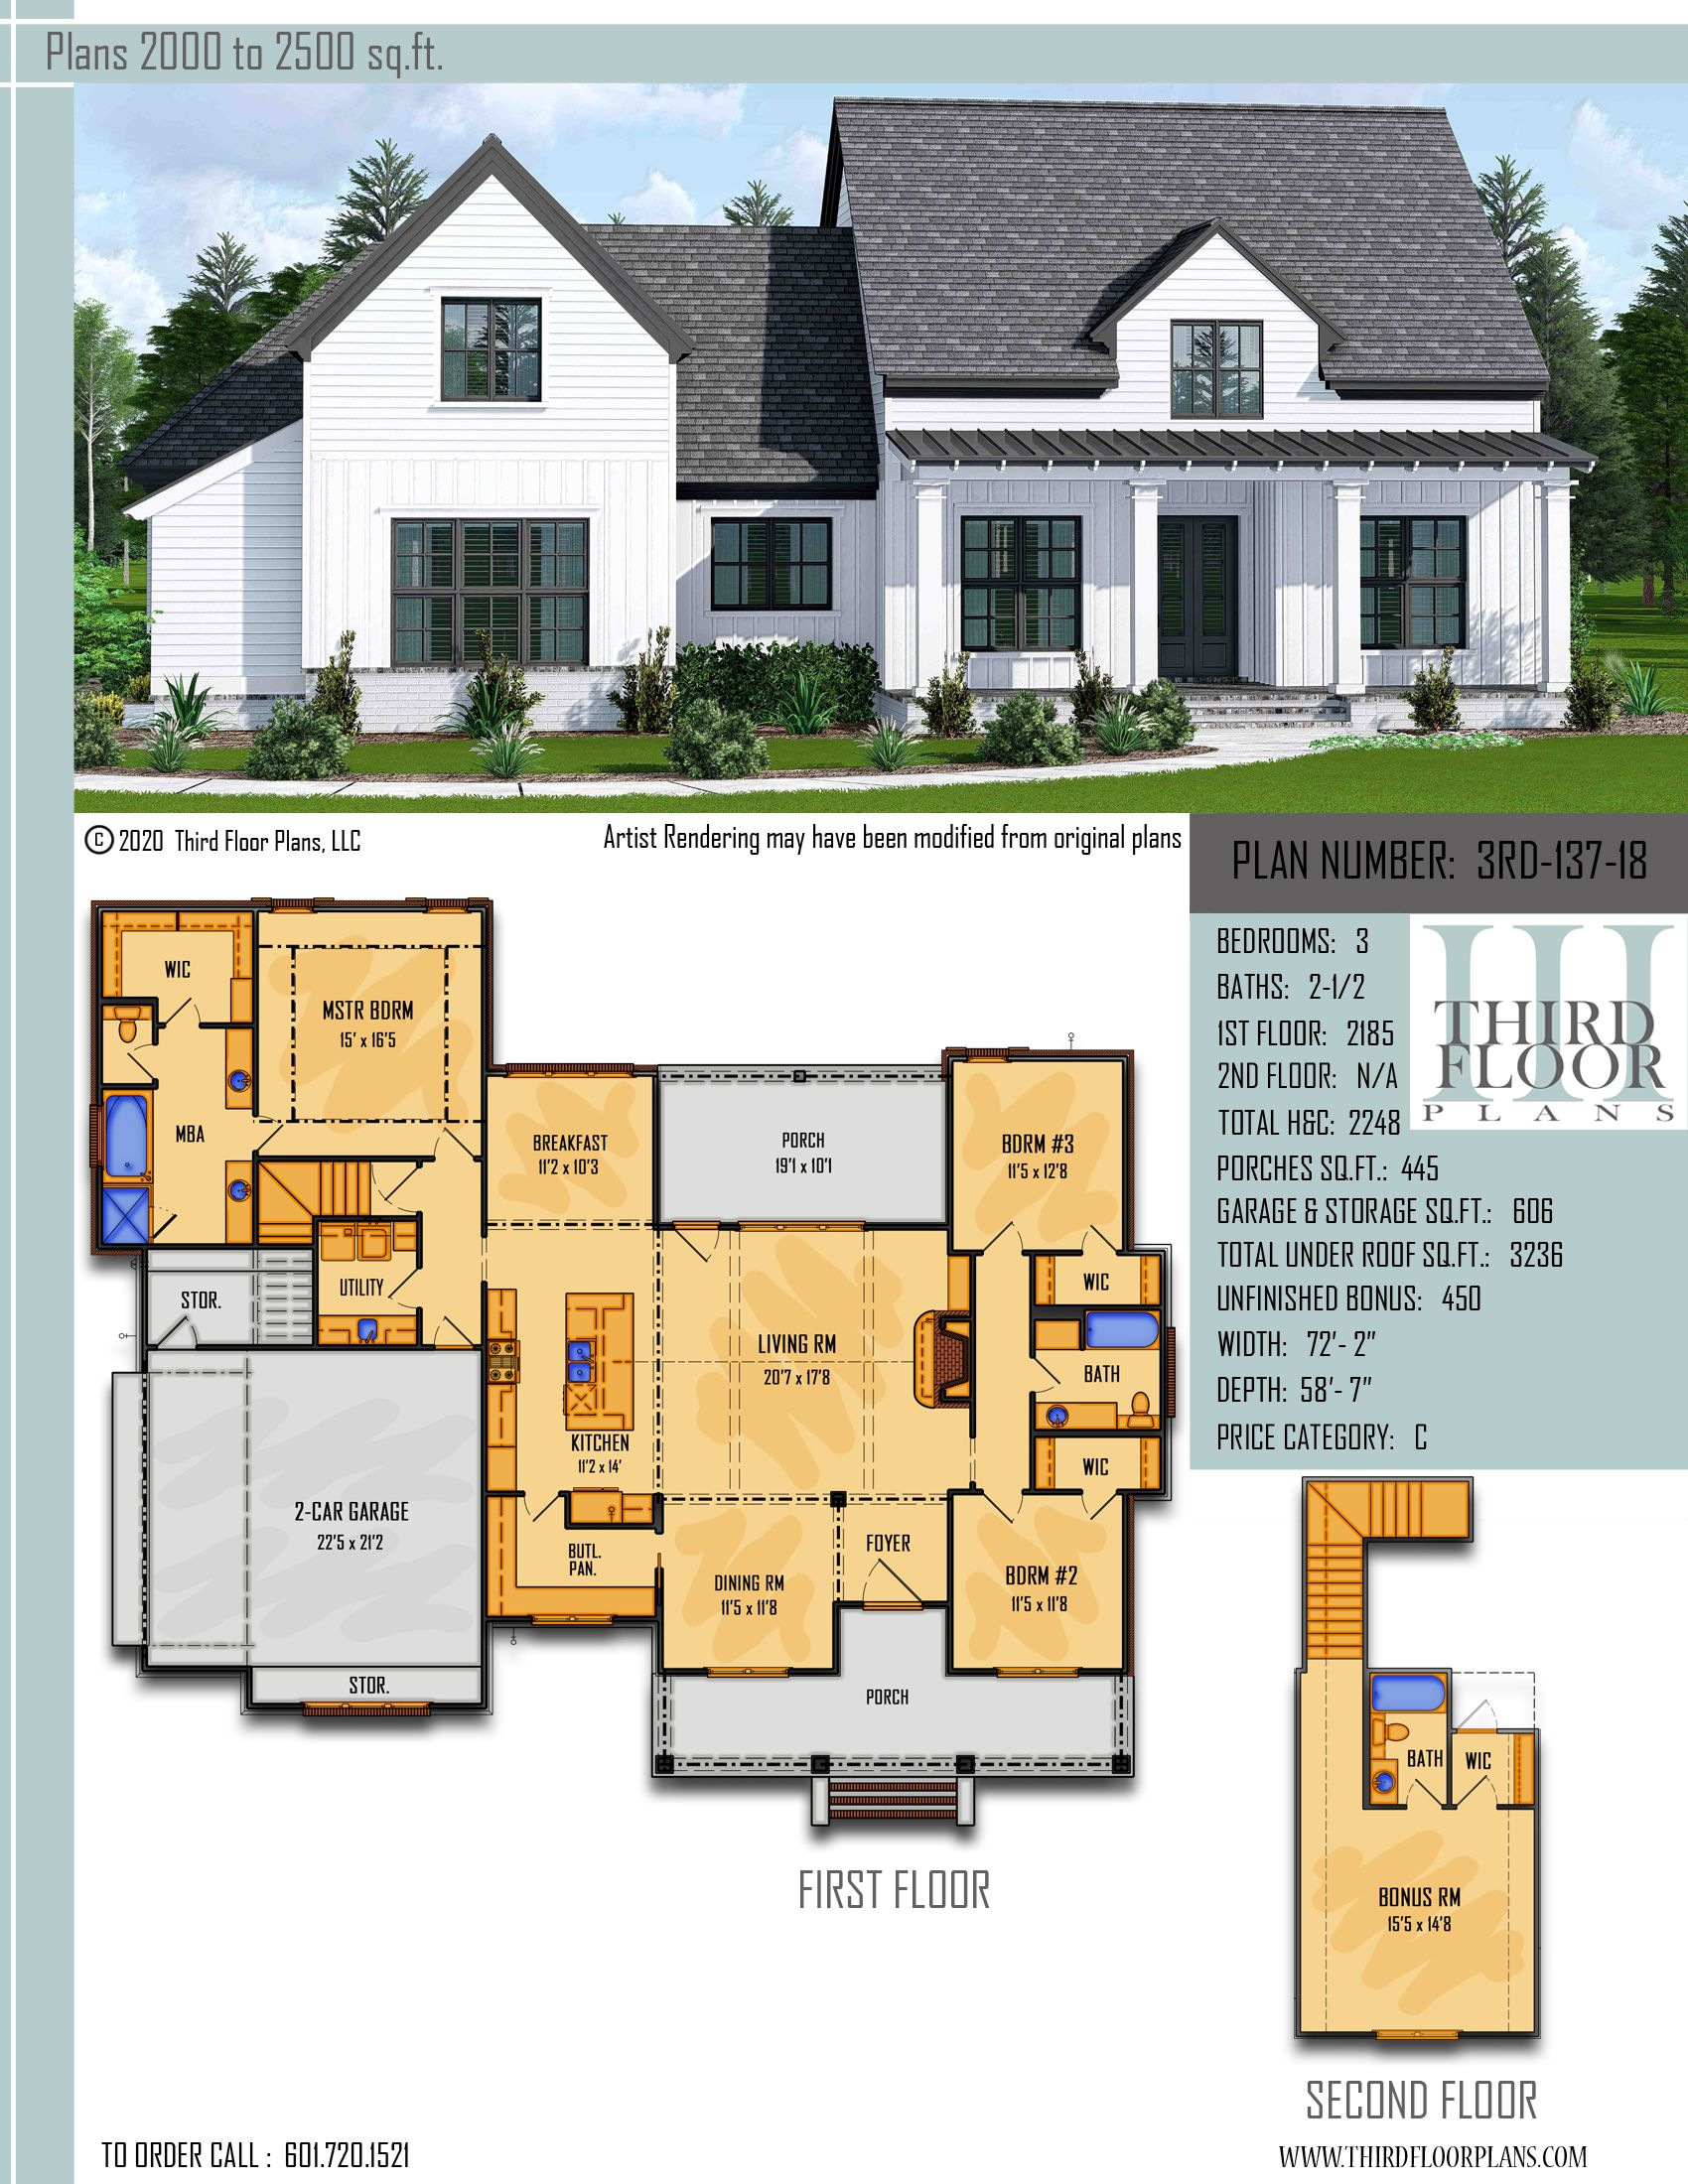 Pin On Plans 2000 2500 Sq Ft